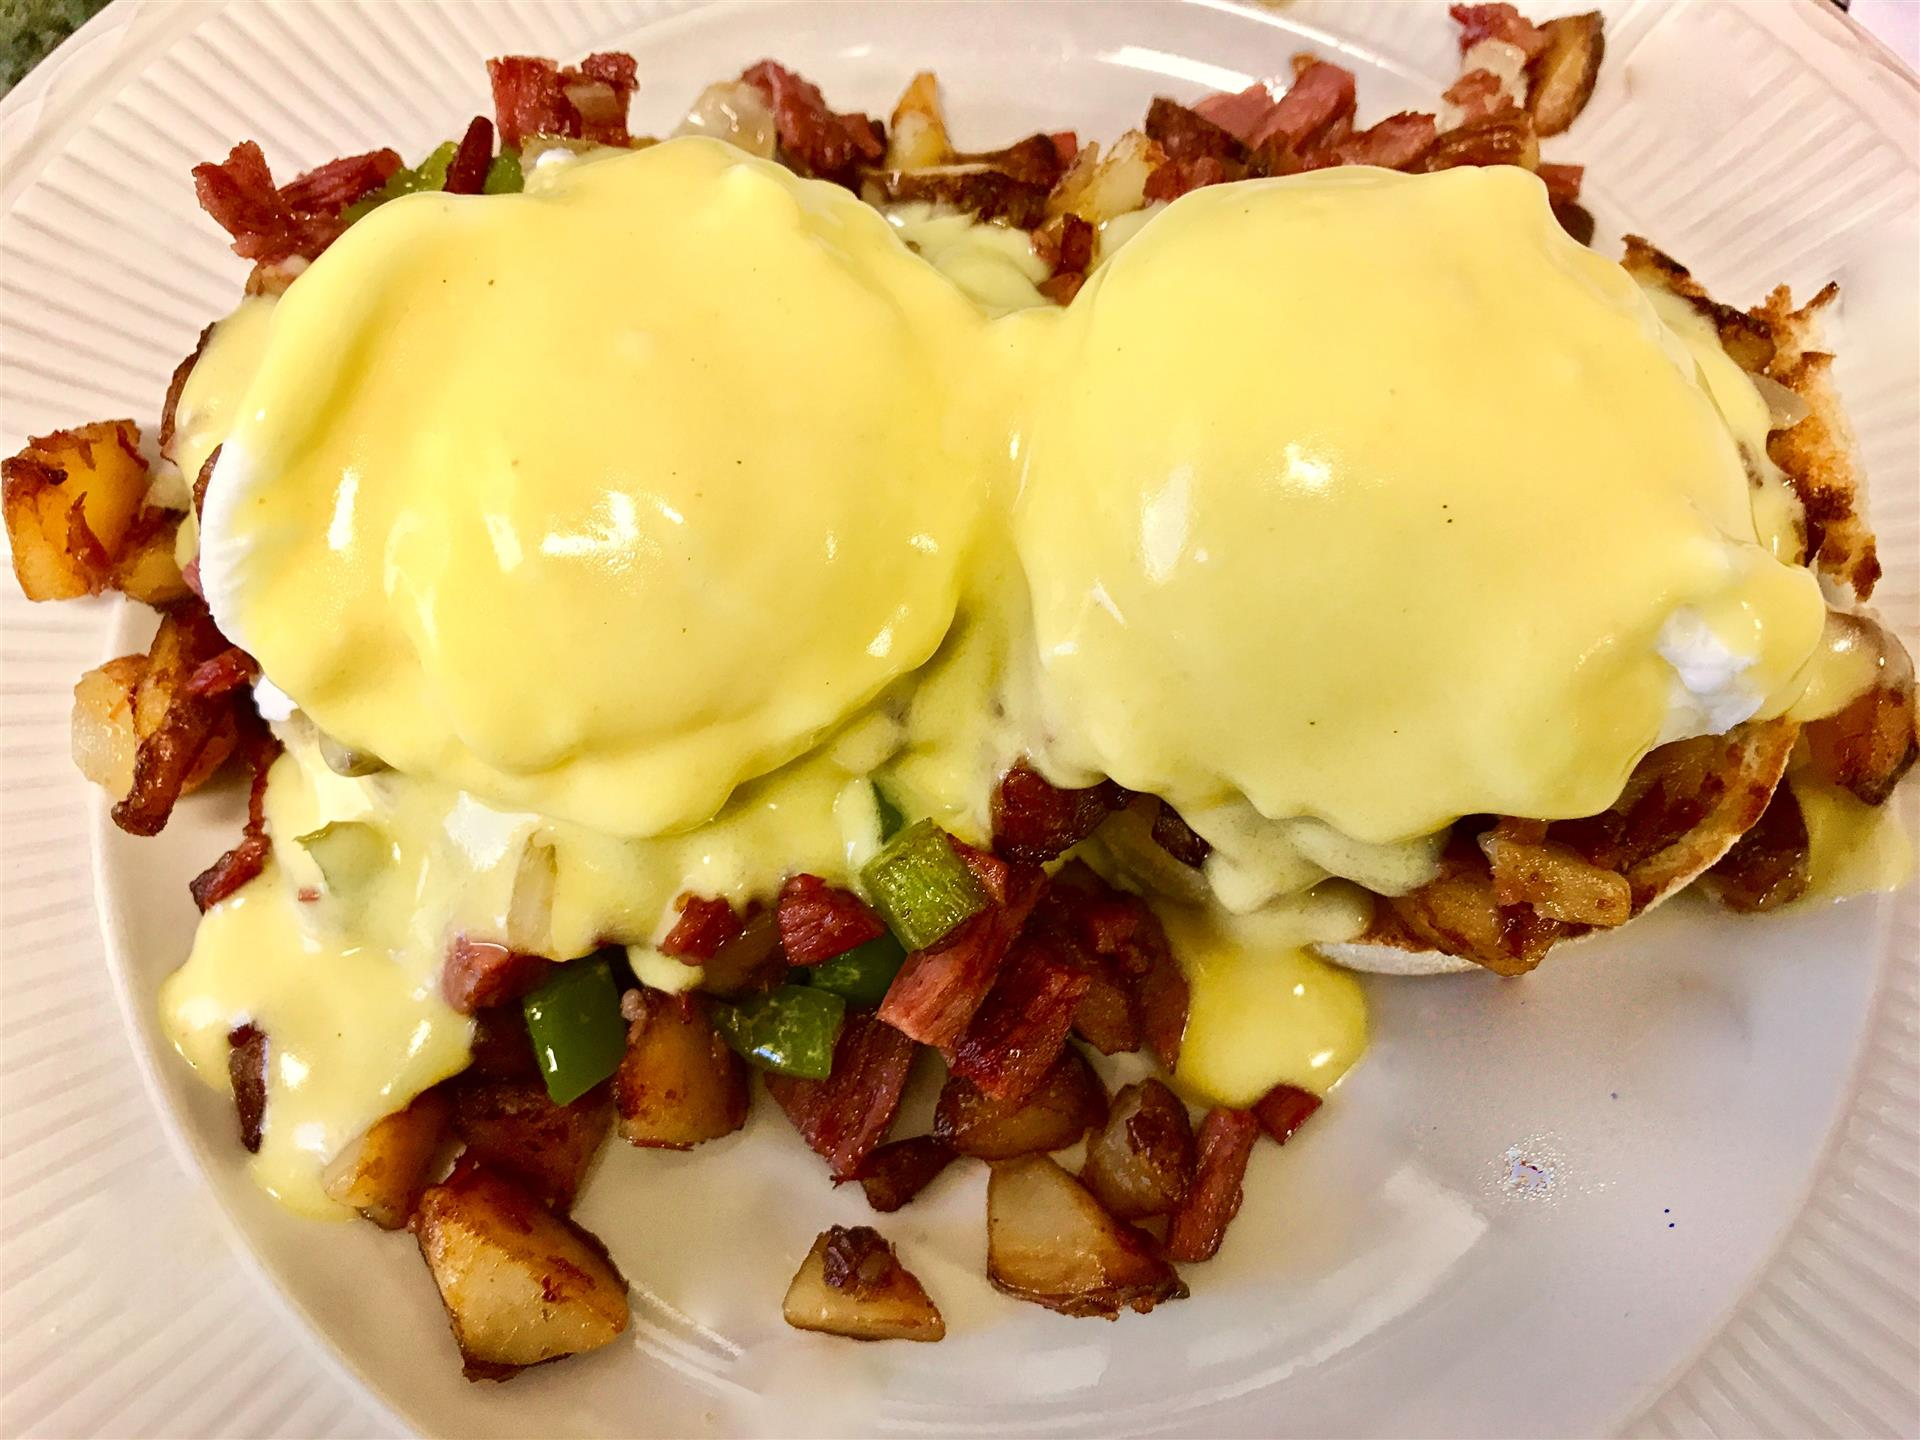 eggs benedict with a side of potatoes